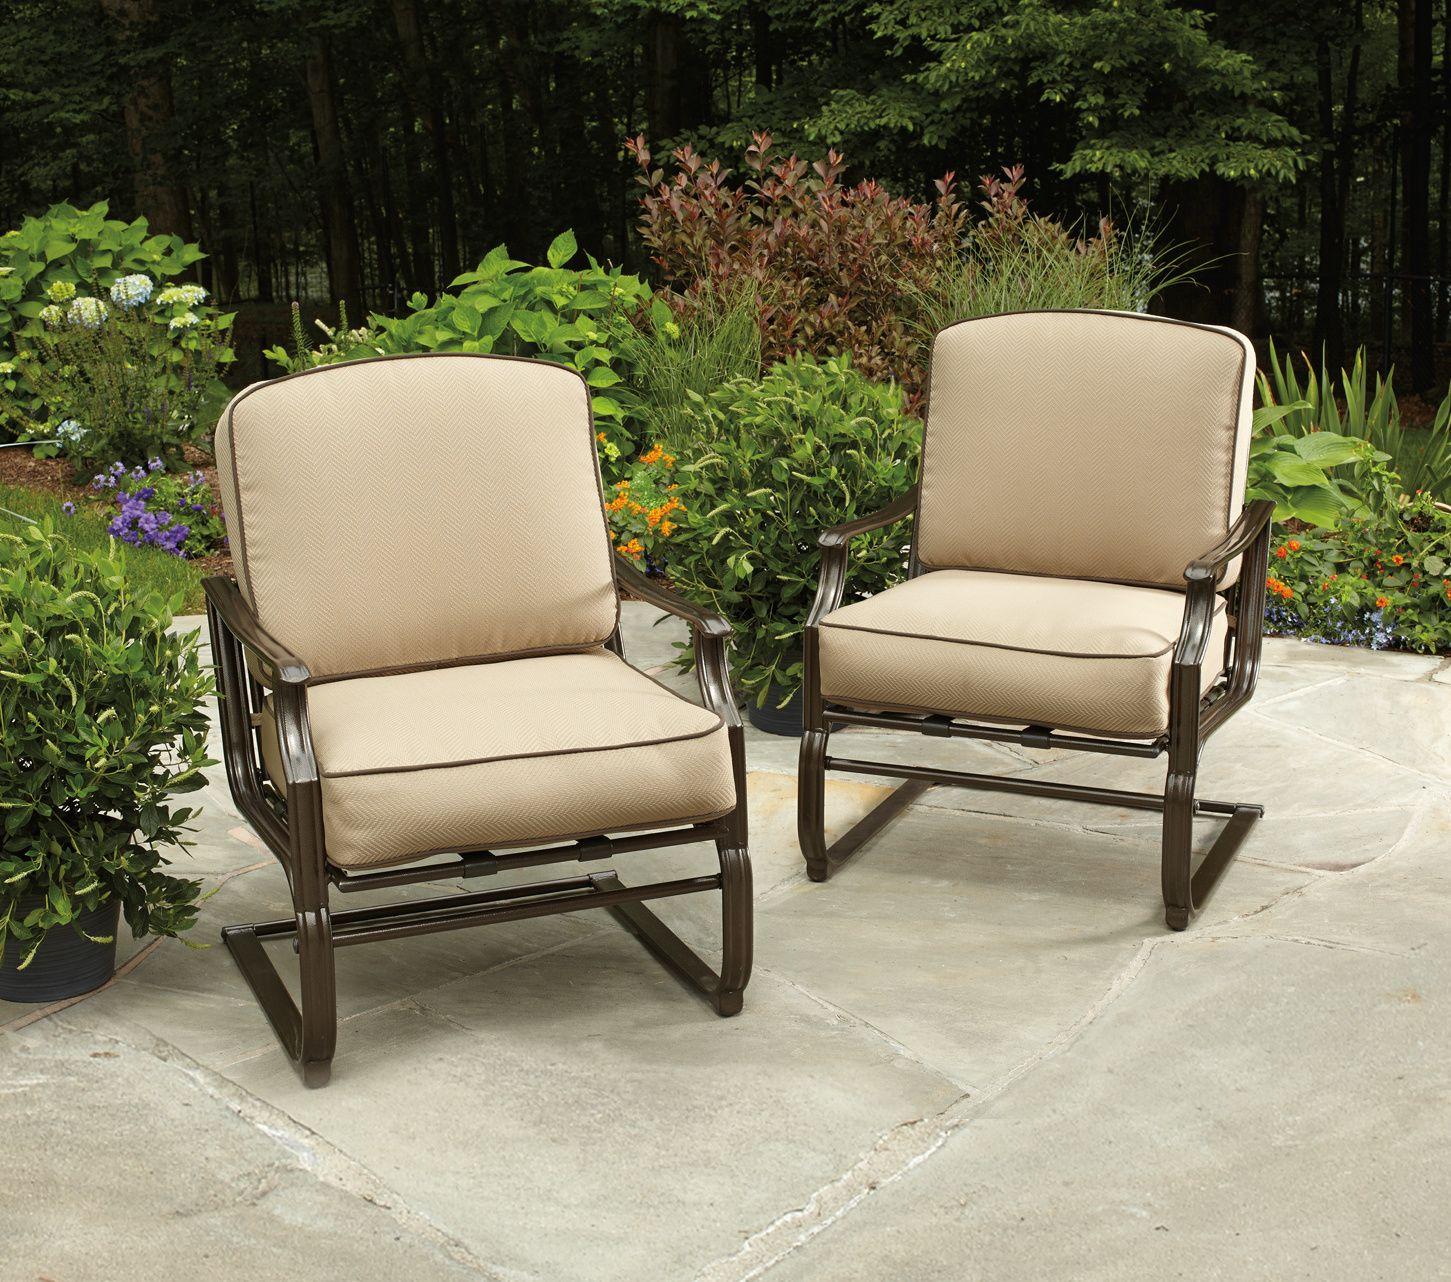 pin by annora on home interior pinterest patio patio chairs and rh pinterest com summer winds patio furniture review summer winds patio table and chairs